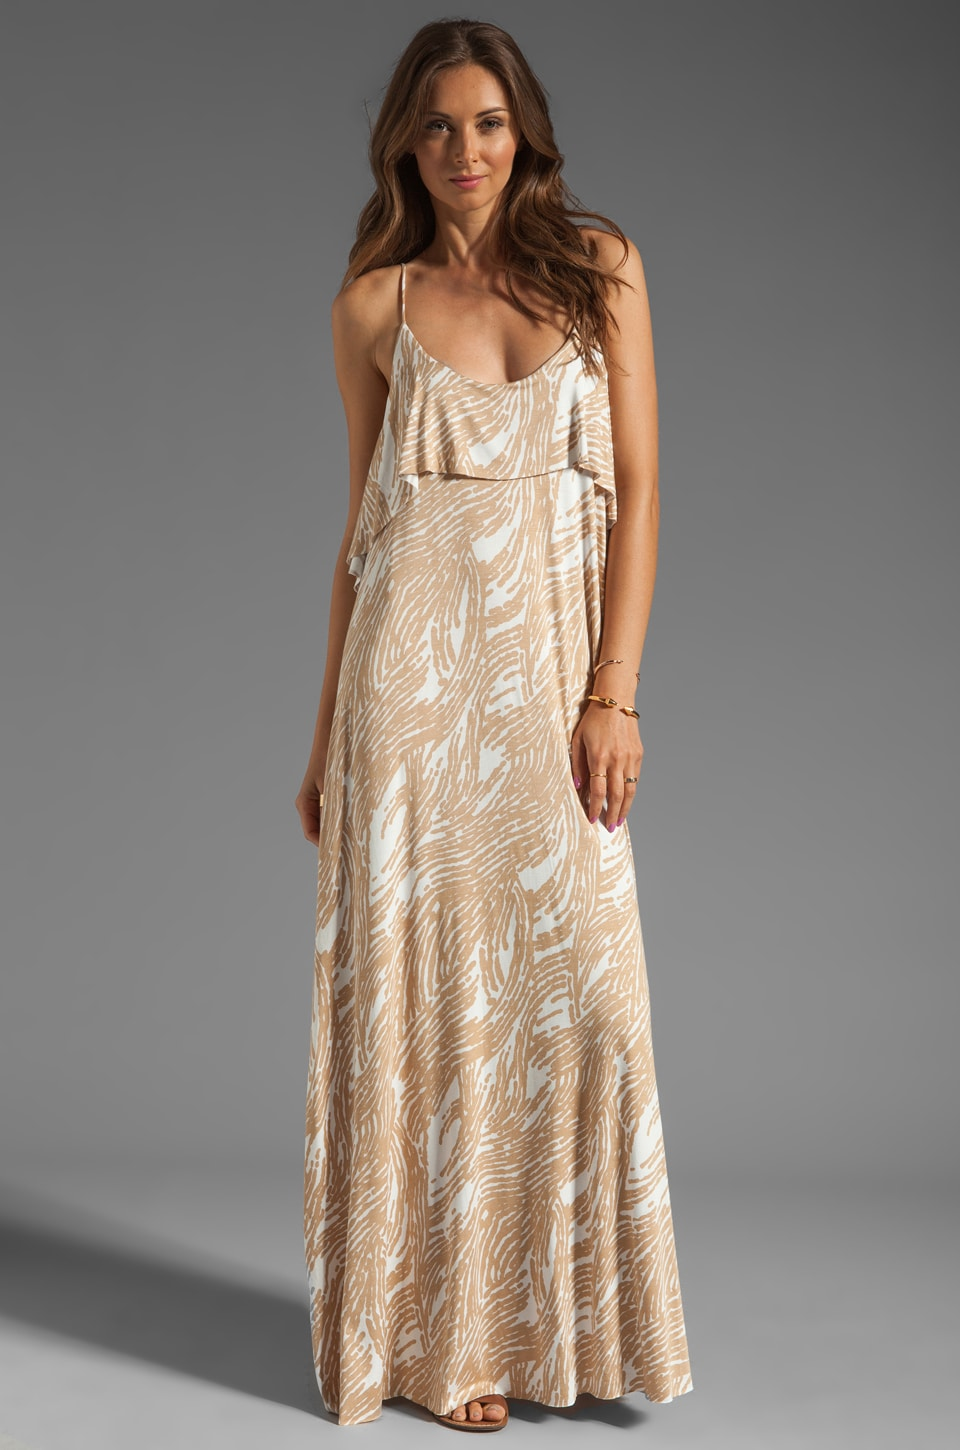 Rachel Pally Noomi Maxi Dress in Bamboo Current